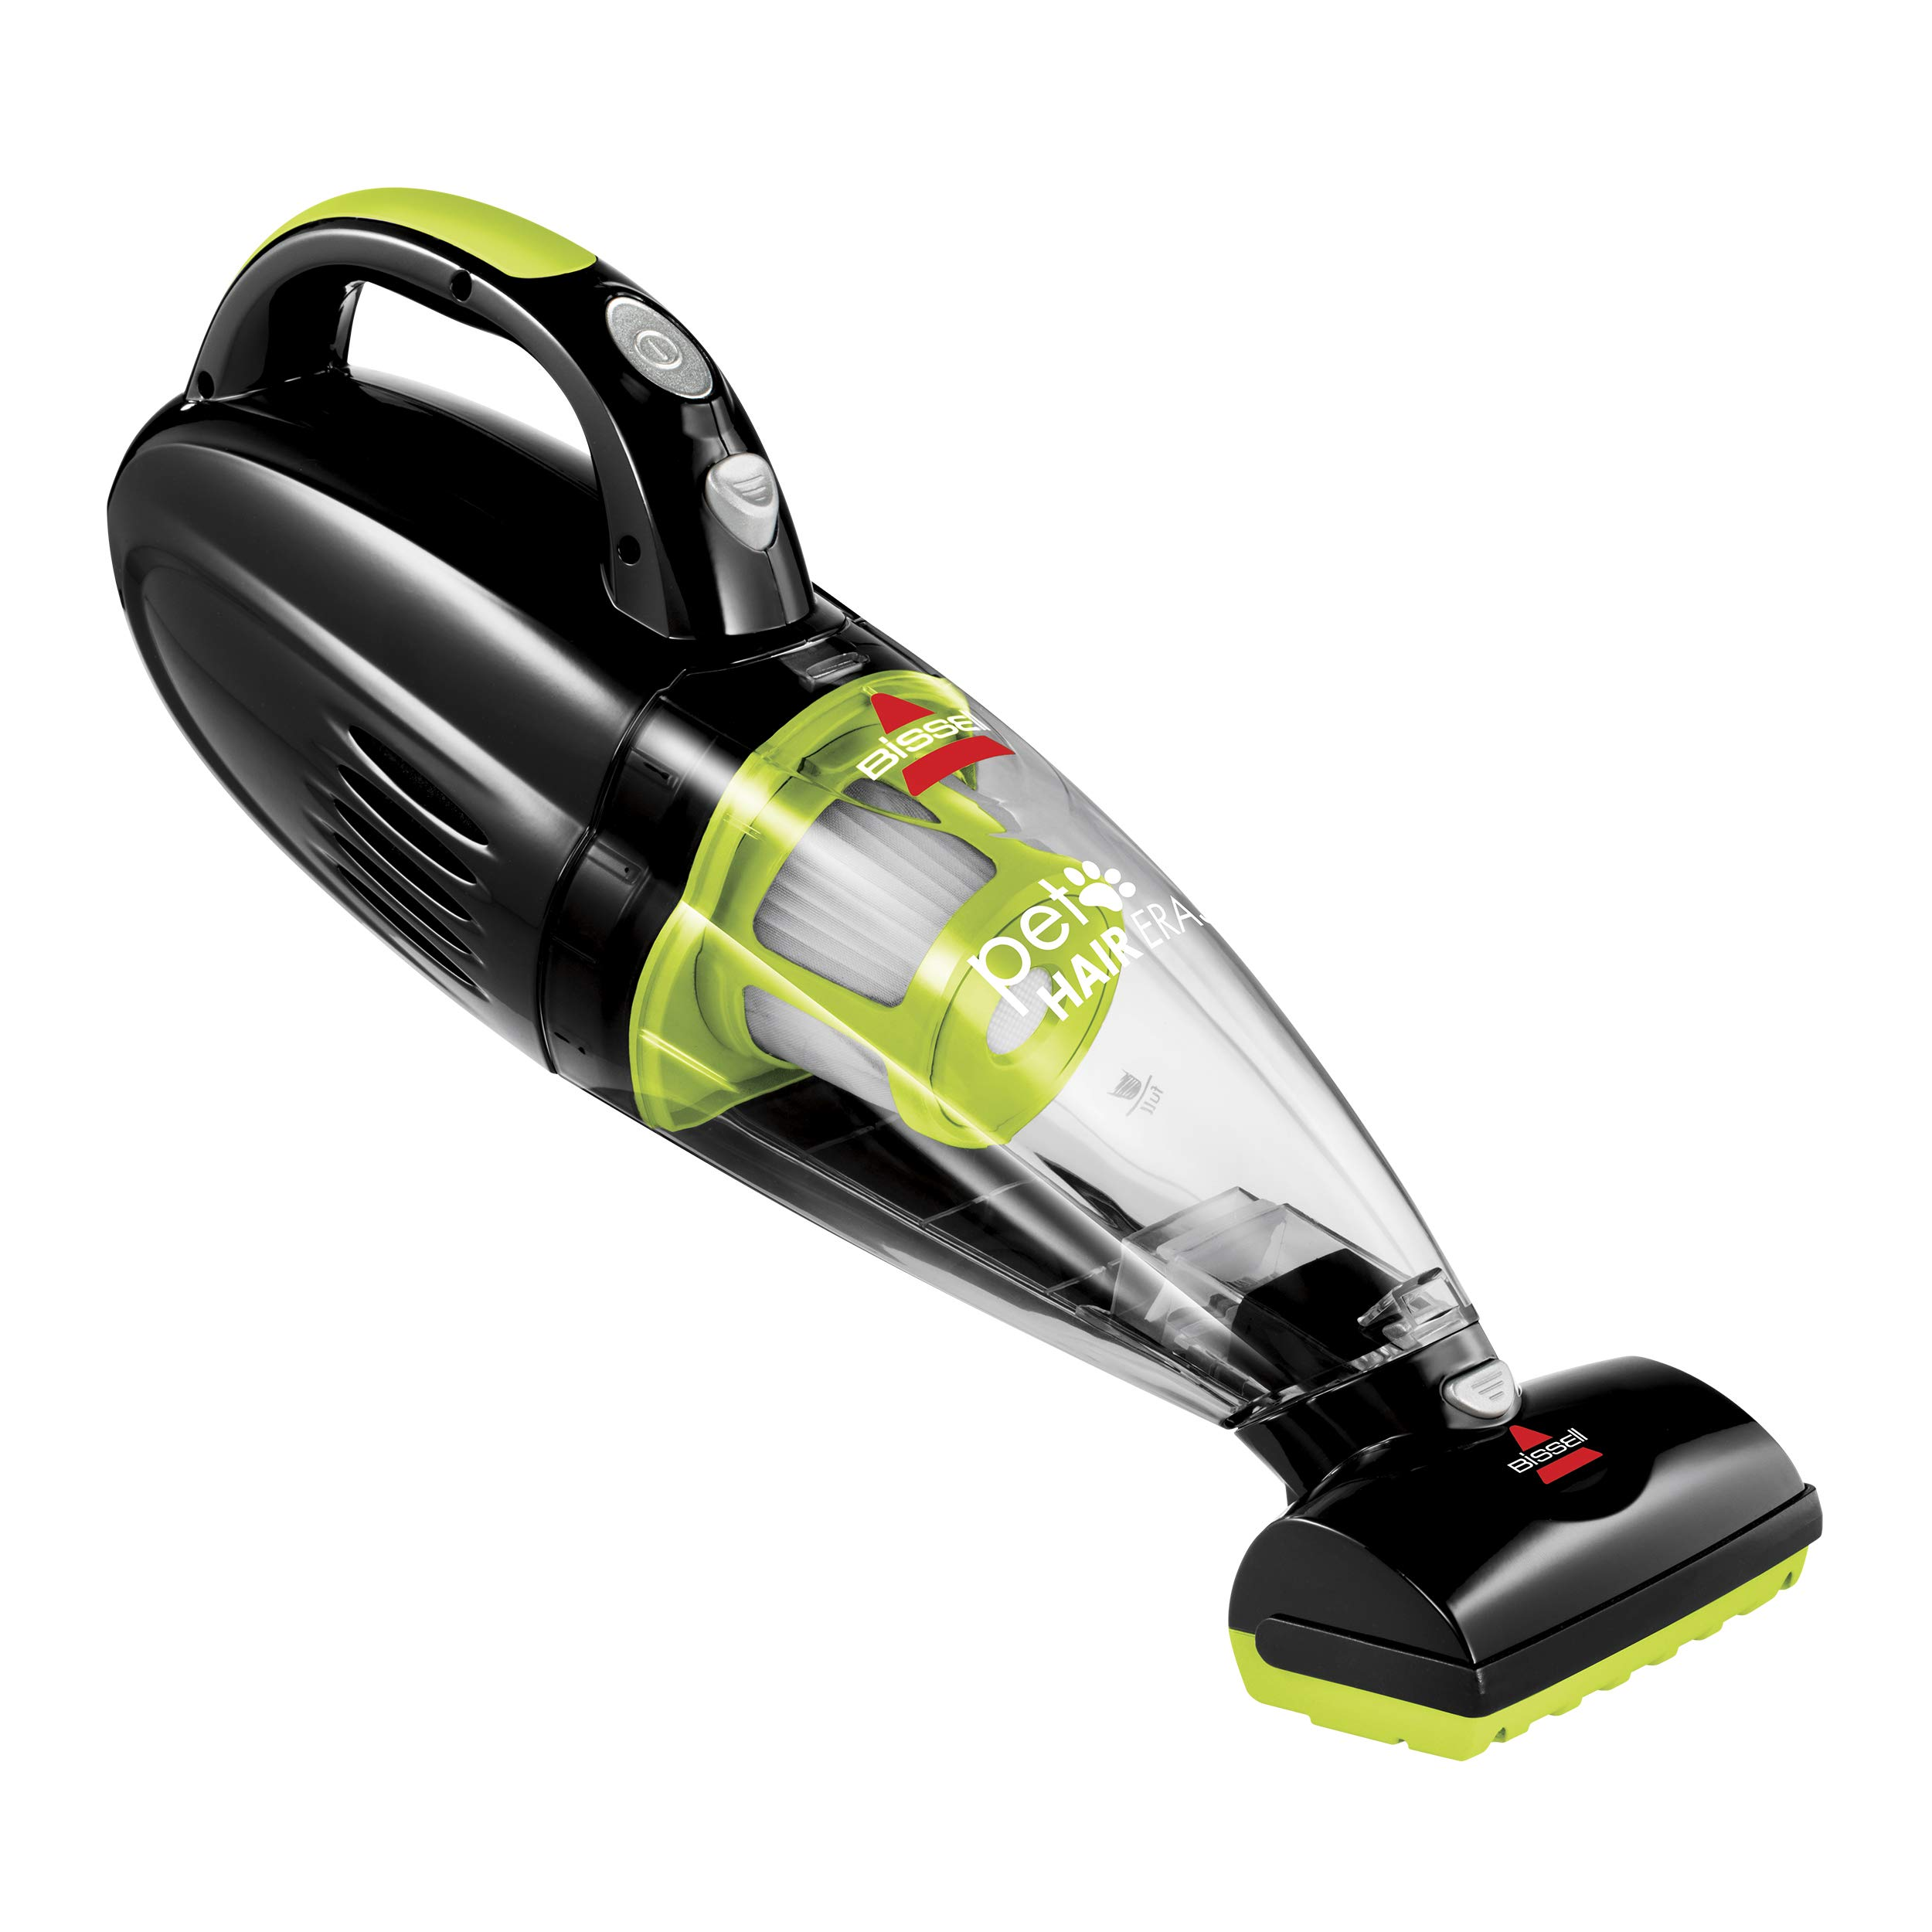 Bissell Pet Hair Eraser Cordless Hand and Car Vacuum, 1782 by Bissell